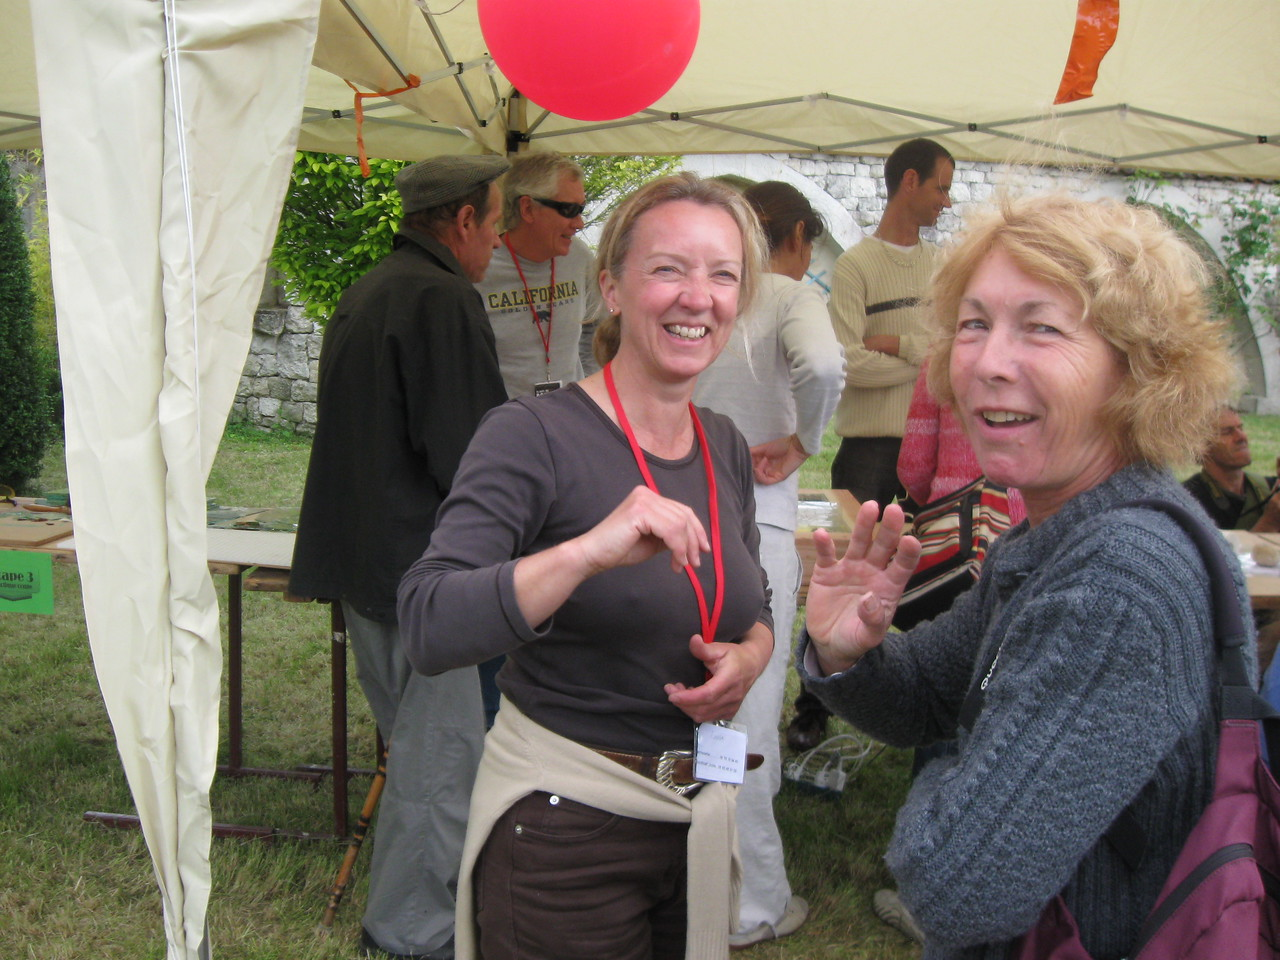 Linda and Colette (one of her Tai Chi buddys)